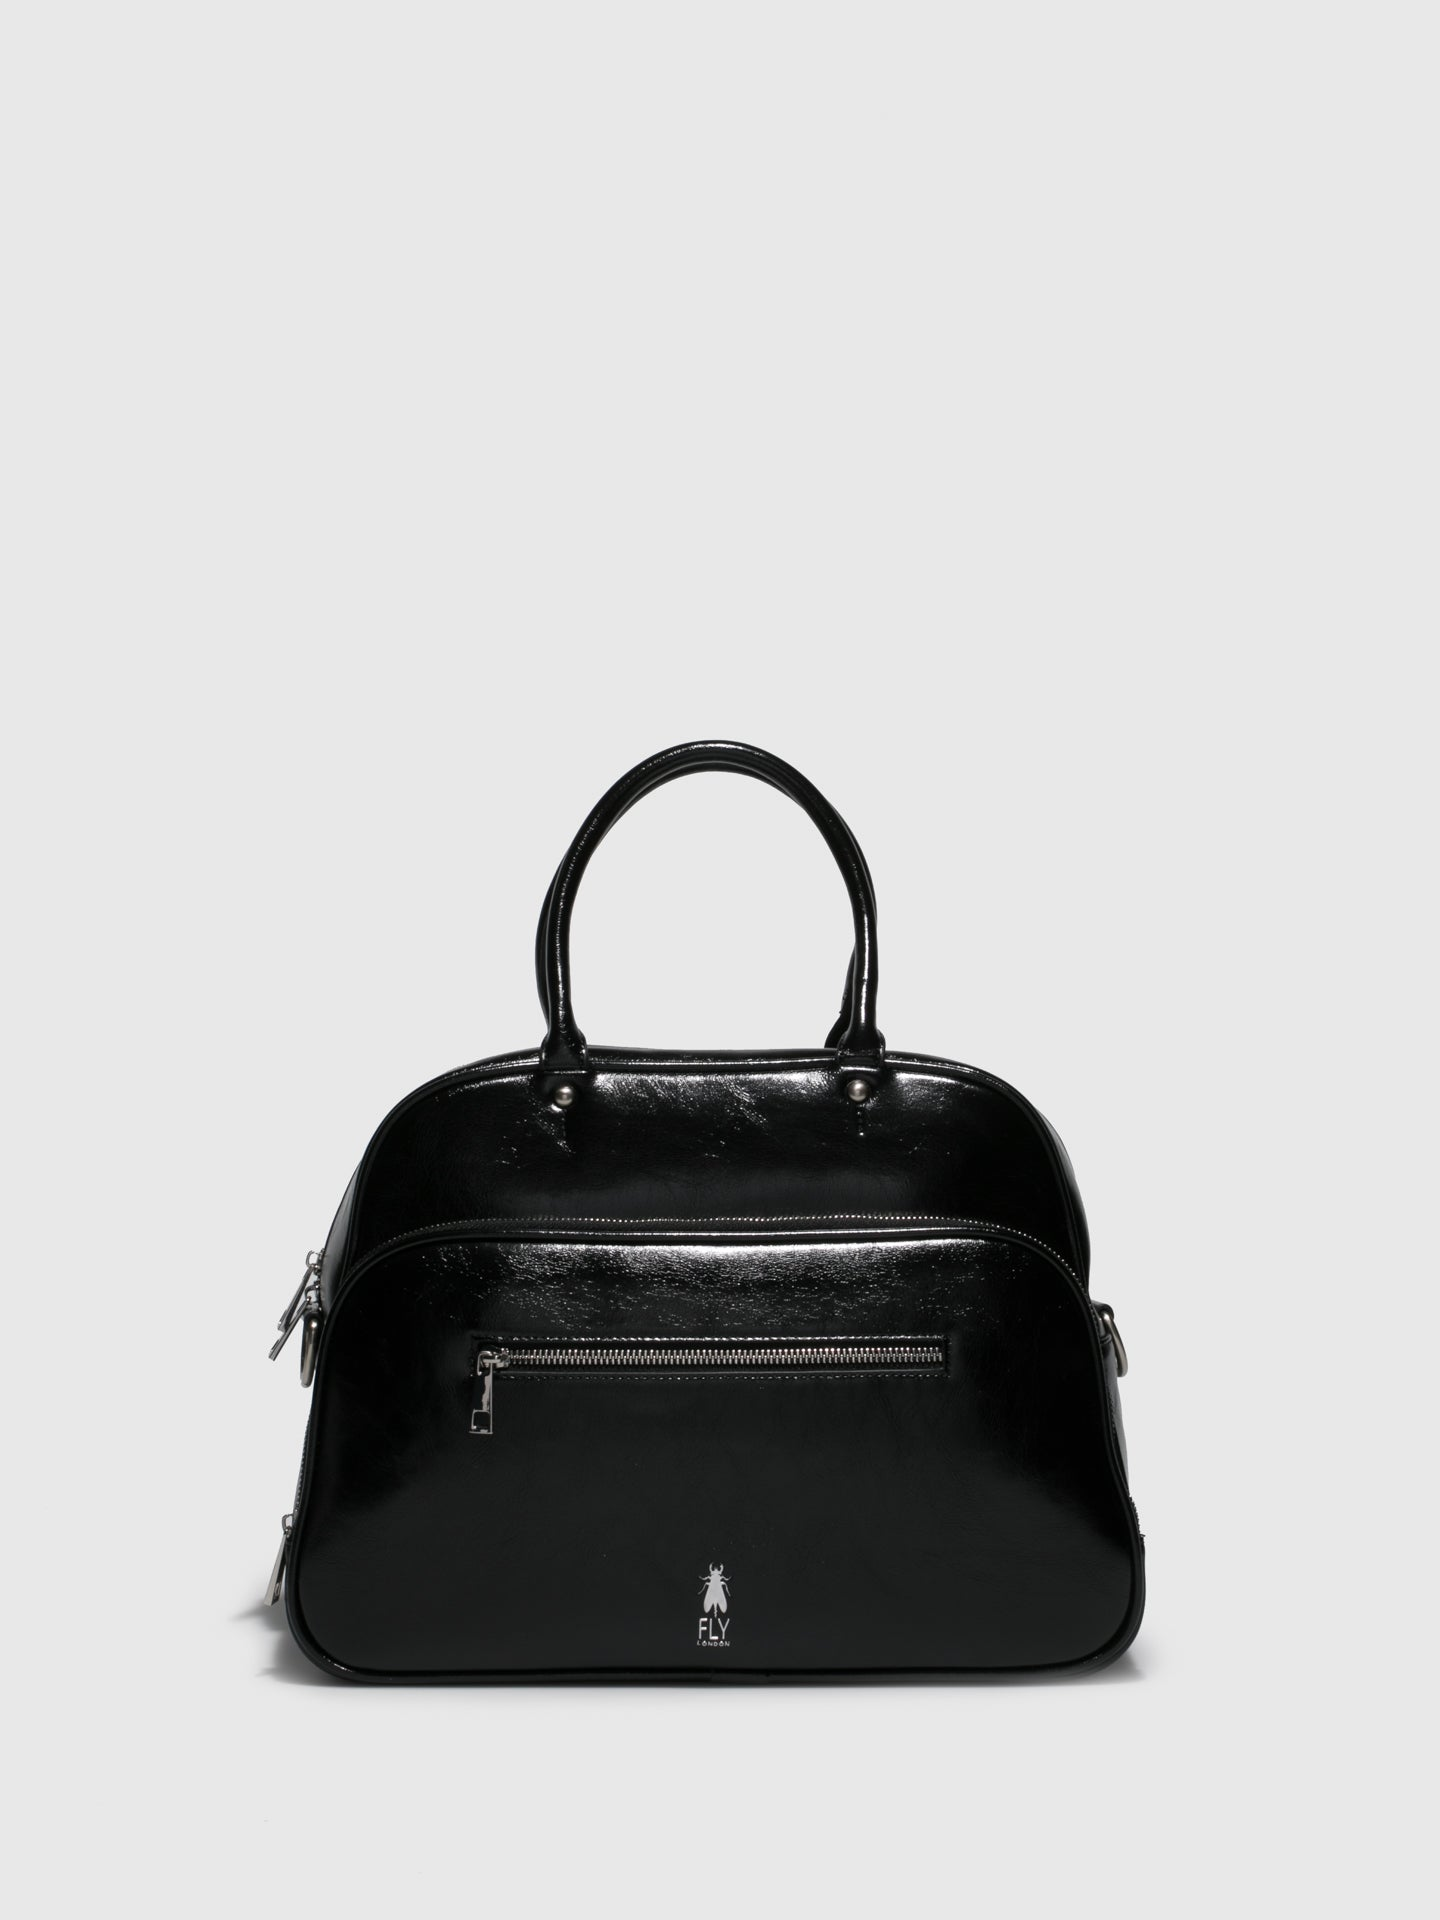 Fly London Black Handbag